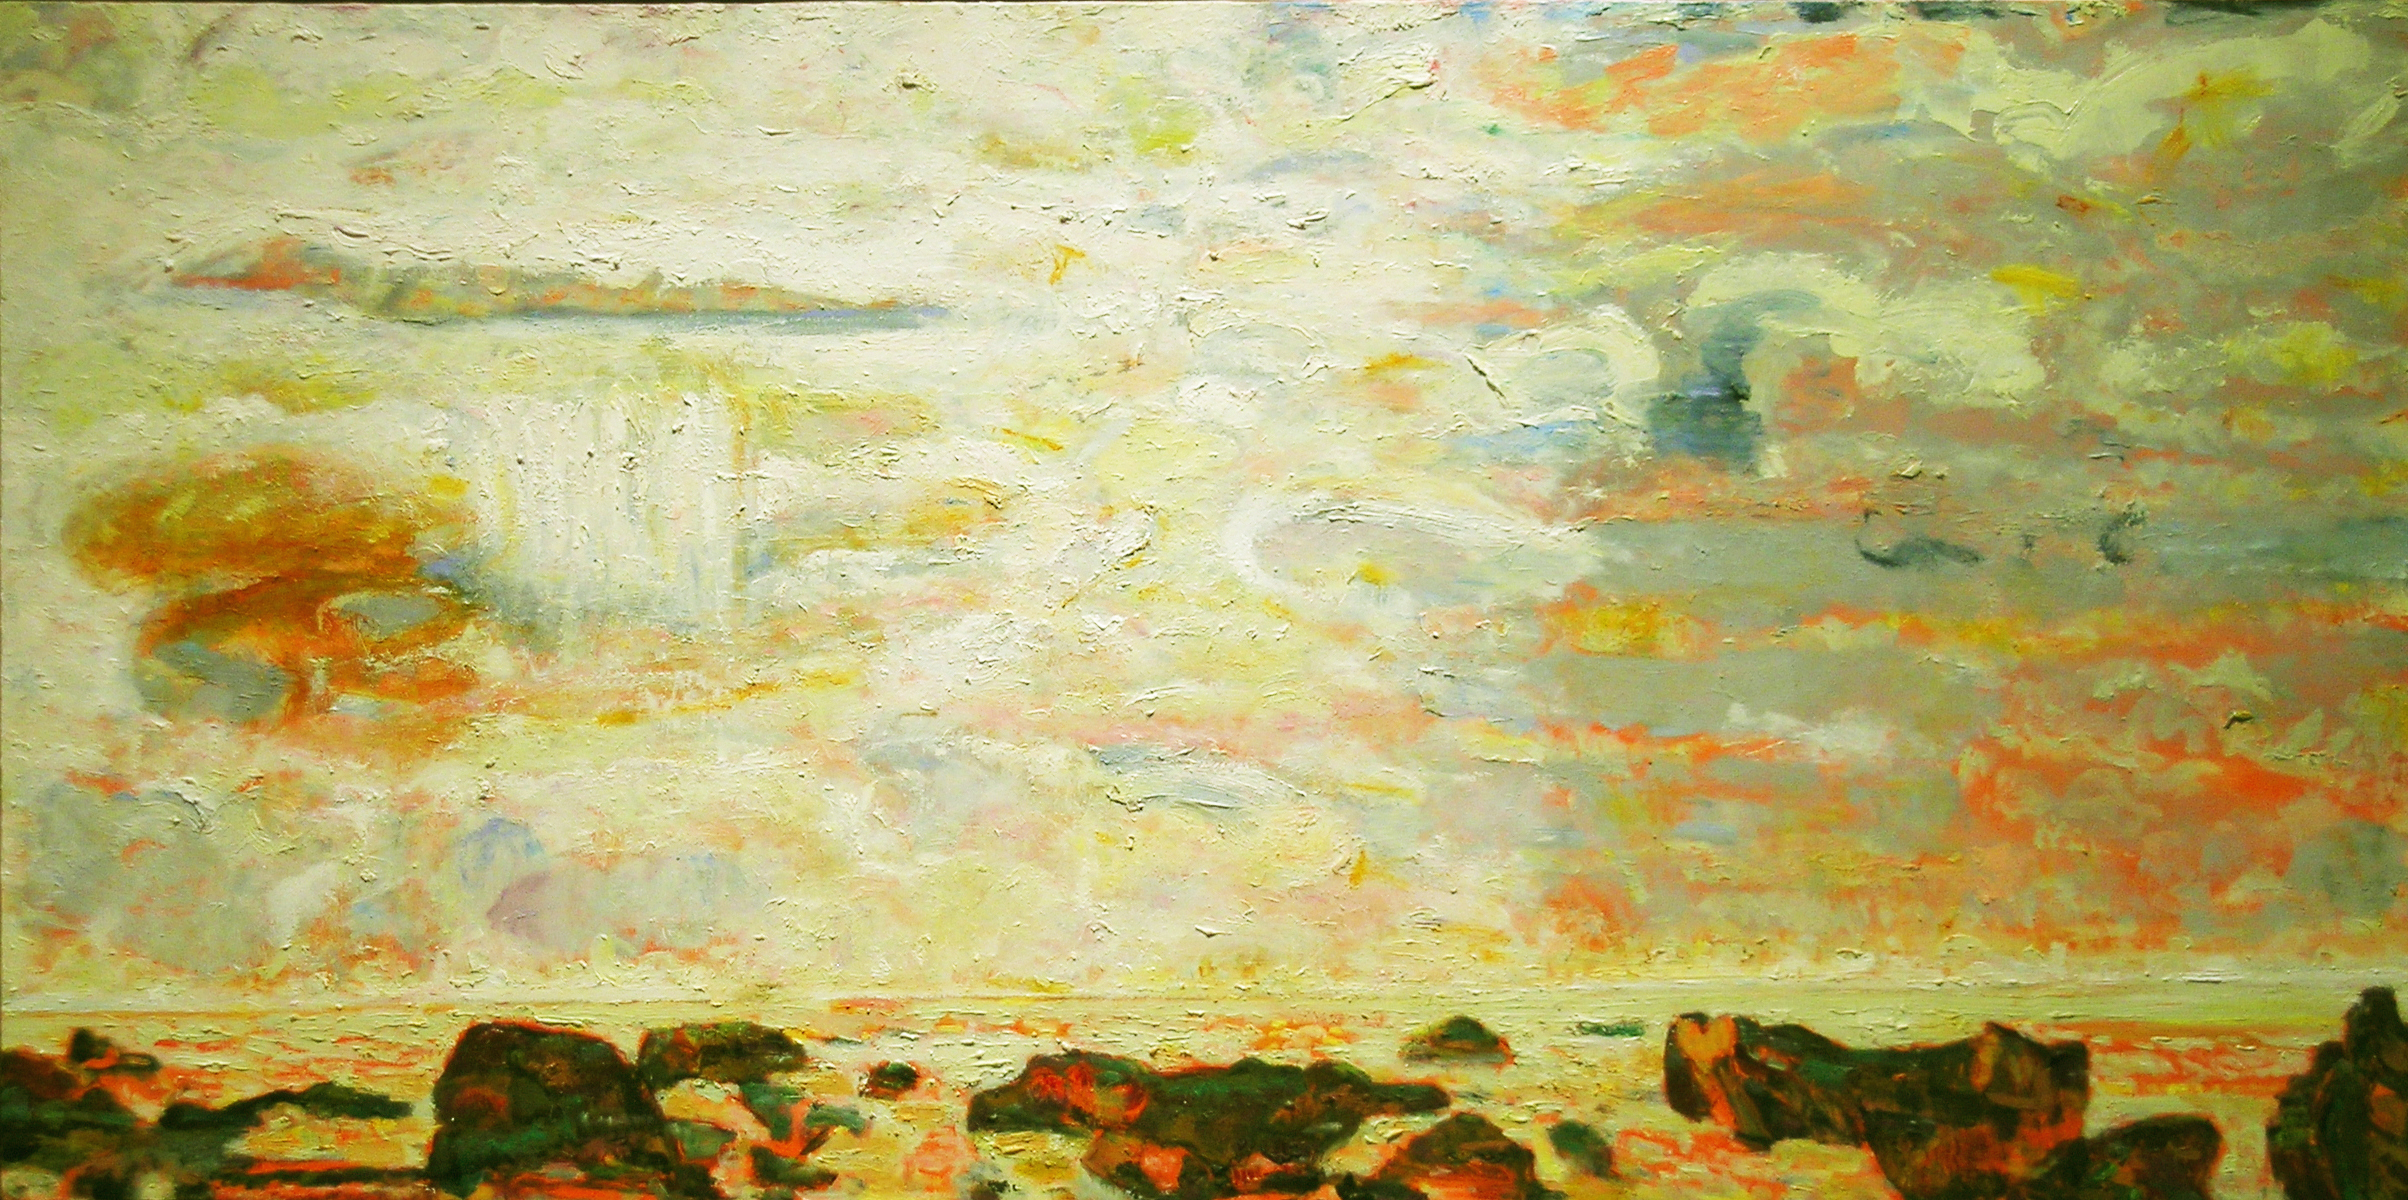 Islands, 2007 oil on canvas, 24 x 48 inches